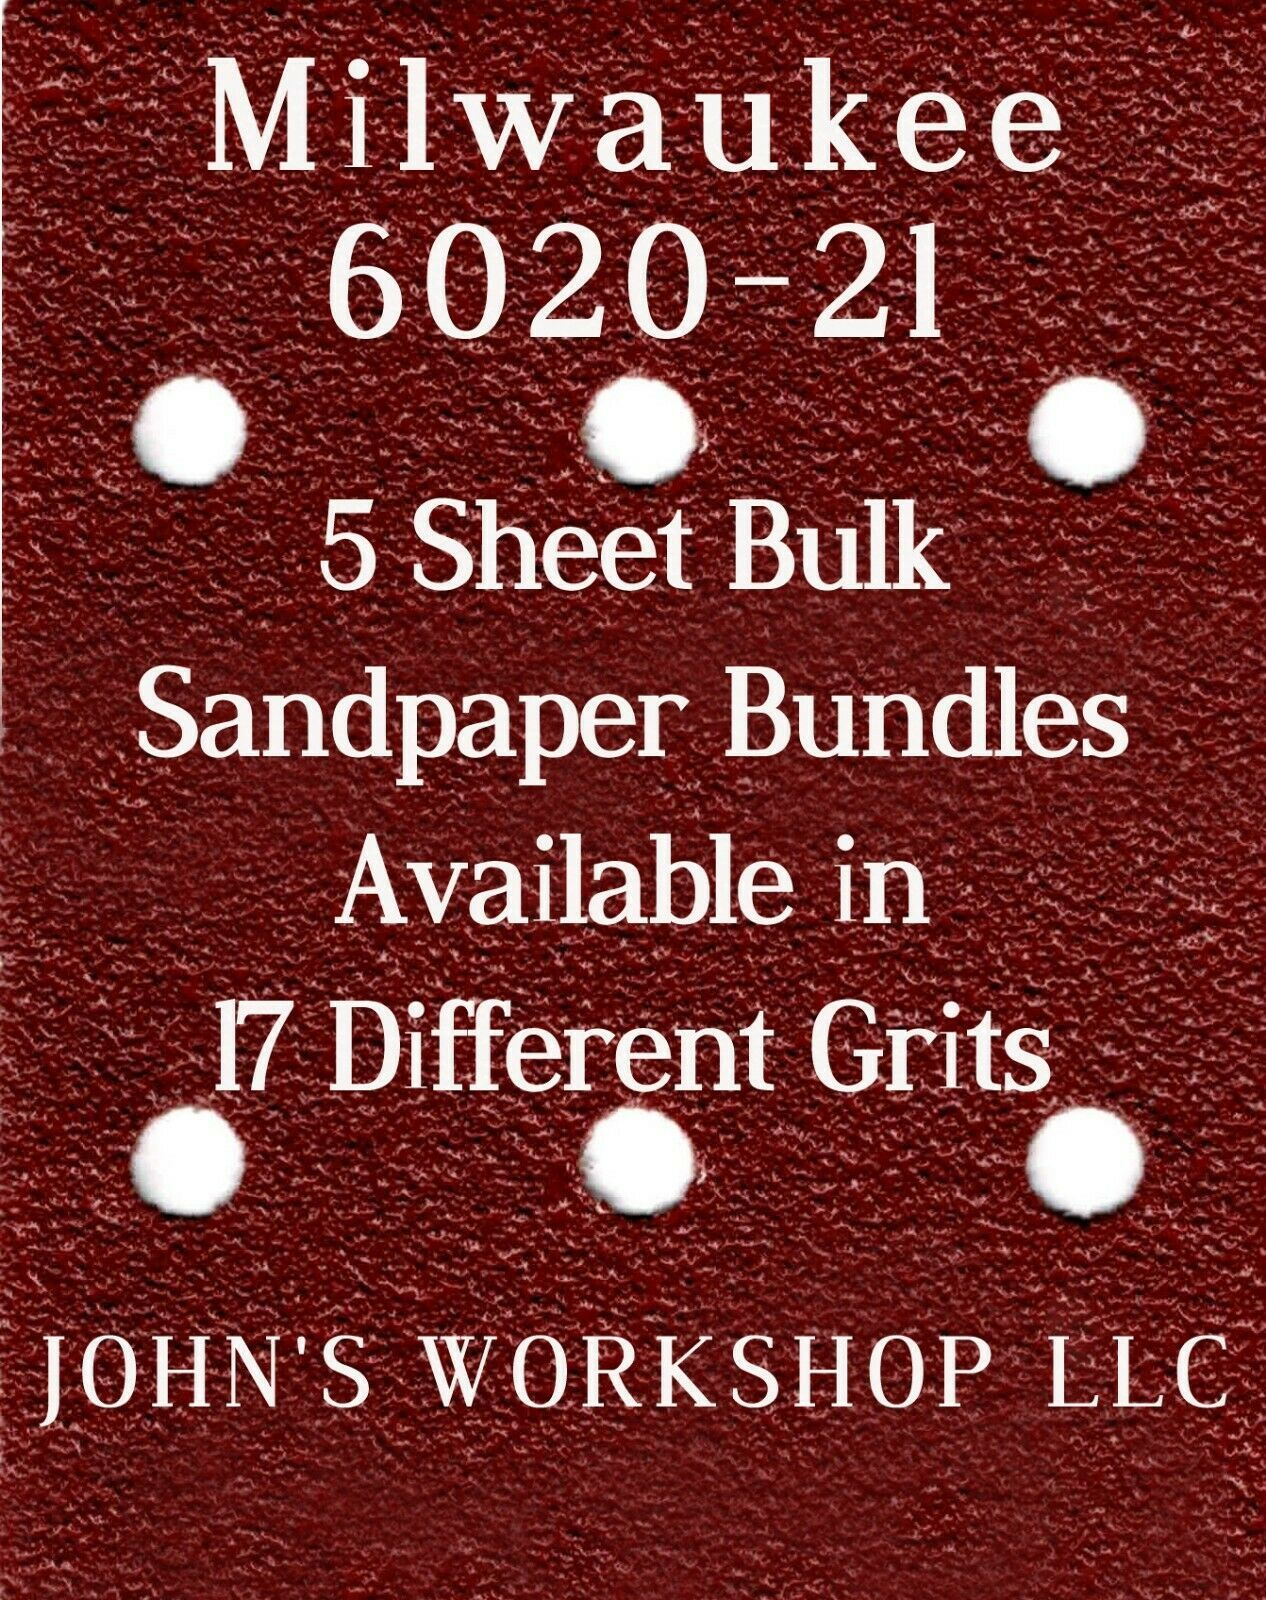 Primary image for Milwaukee 6020-21 - 1/4 Sheet - 17 Grits - No-Slip - 5 Sandpaper Bulk Bundles